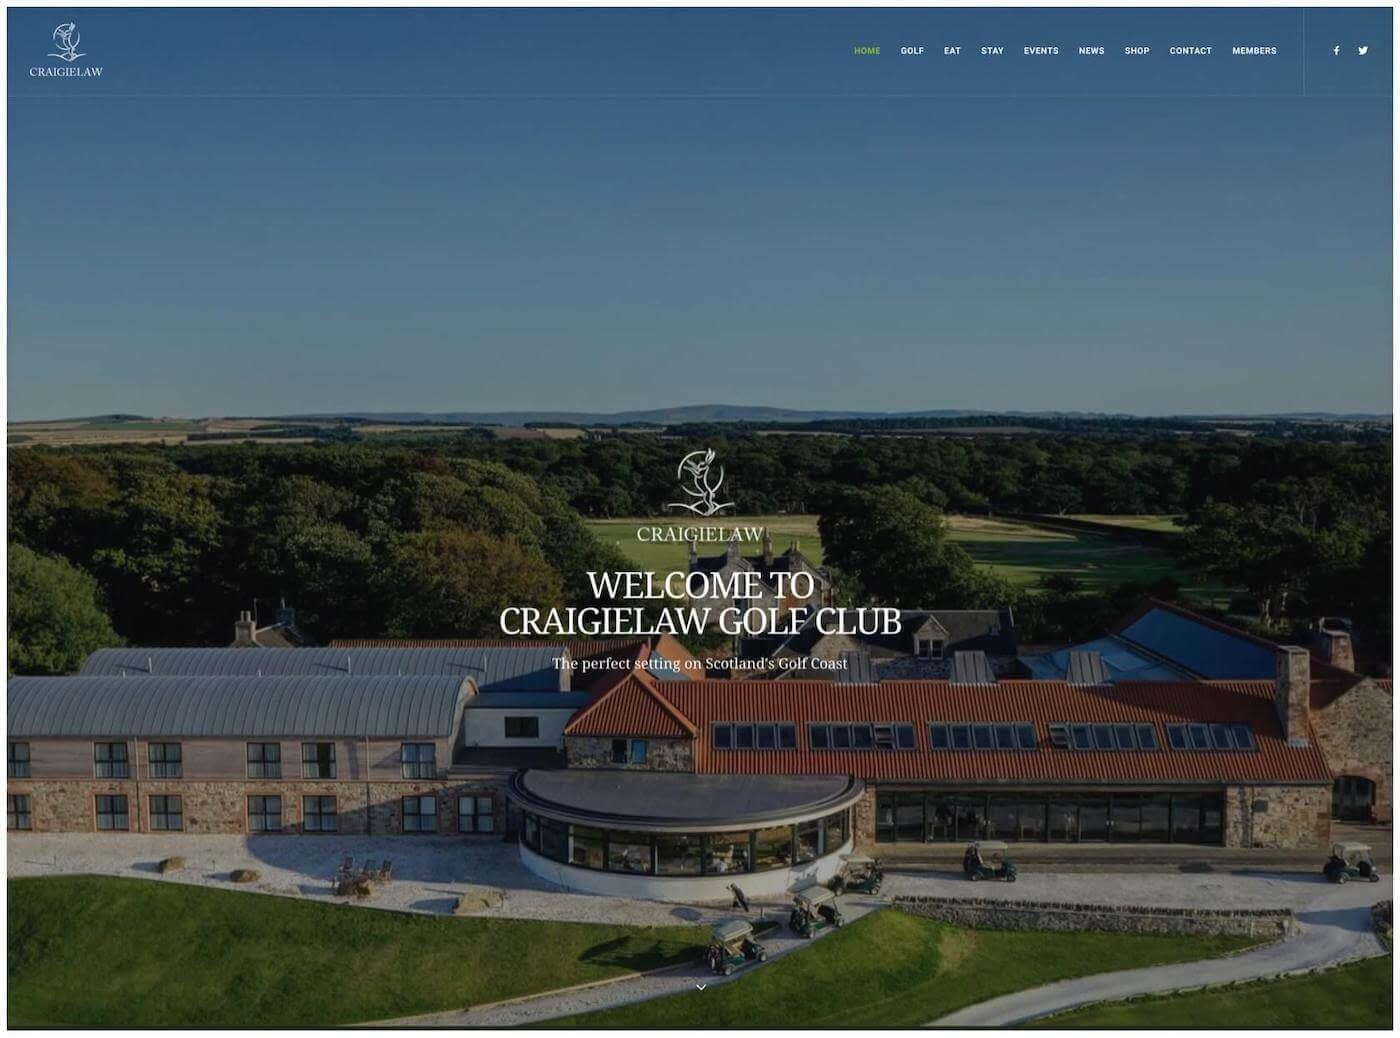 Web design for Craigielaw Golf Club, East Lothian